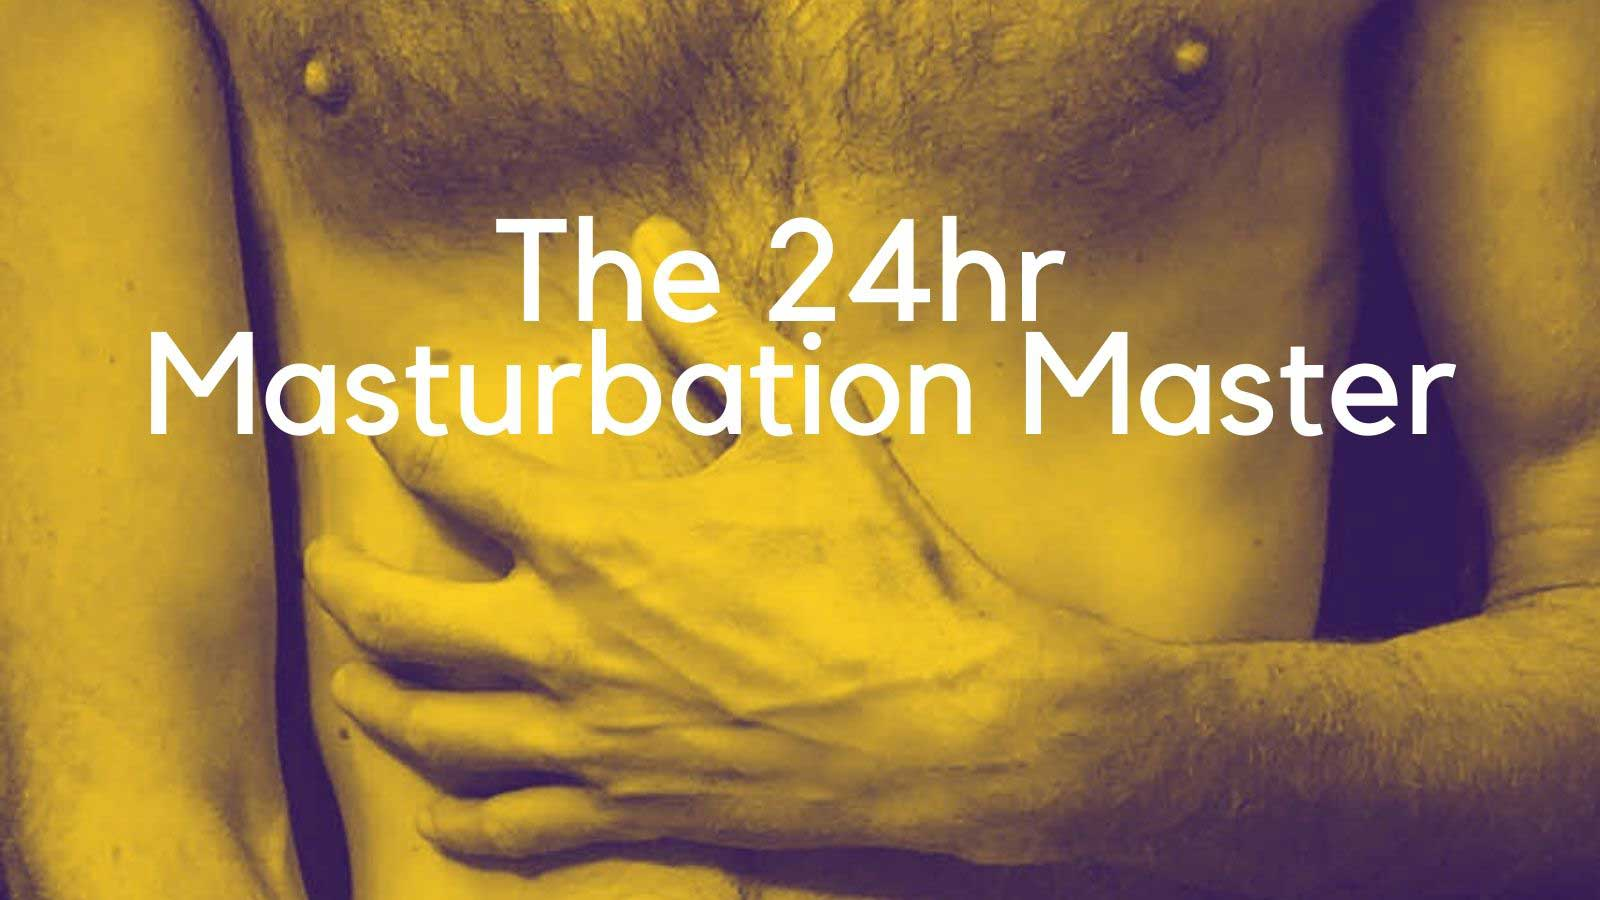 New Book Release THE 24HR MASTURBATION MASTER by BW Member Saboteur